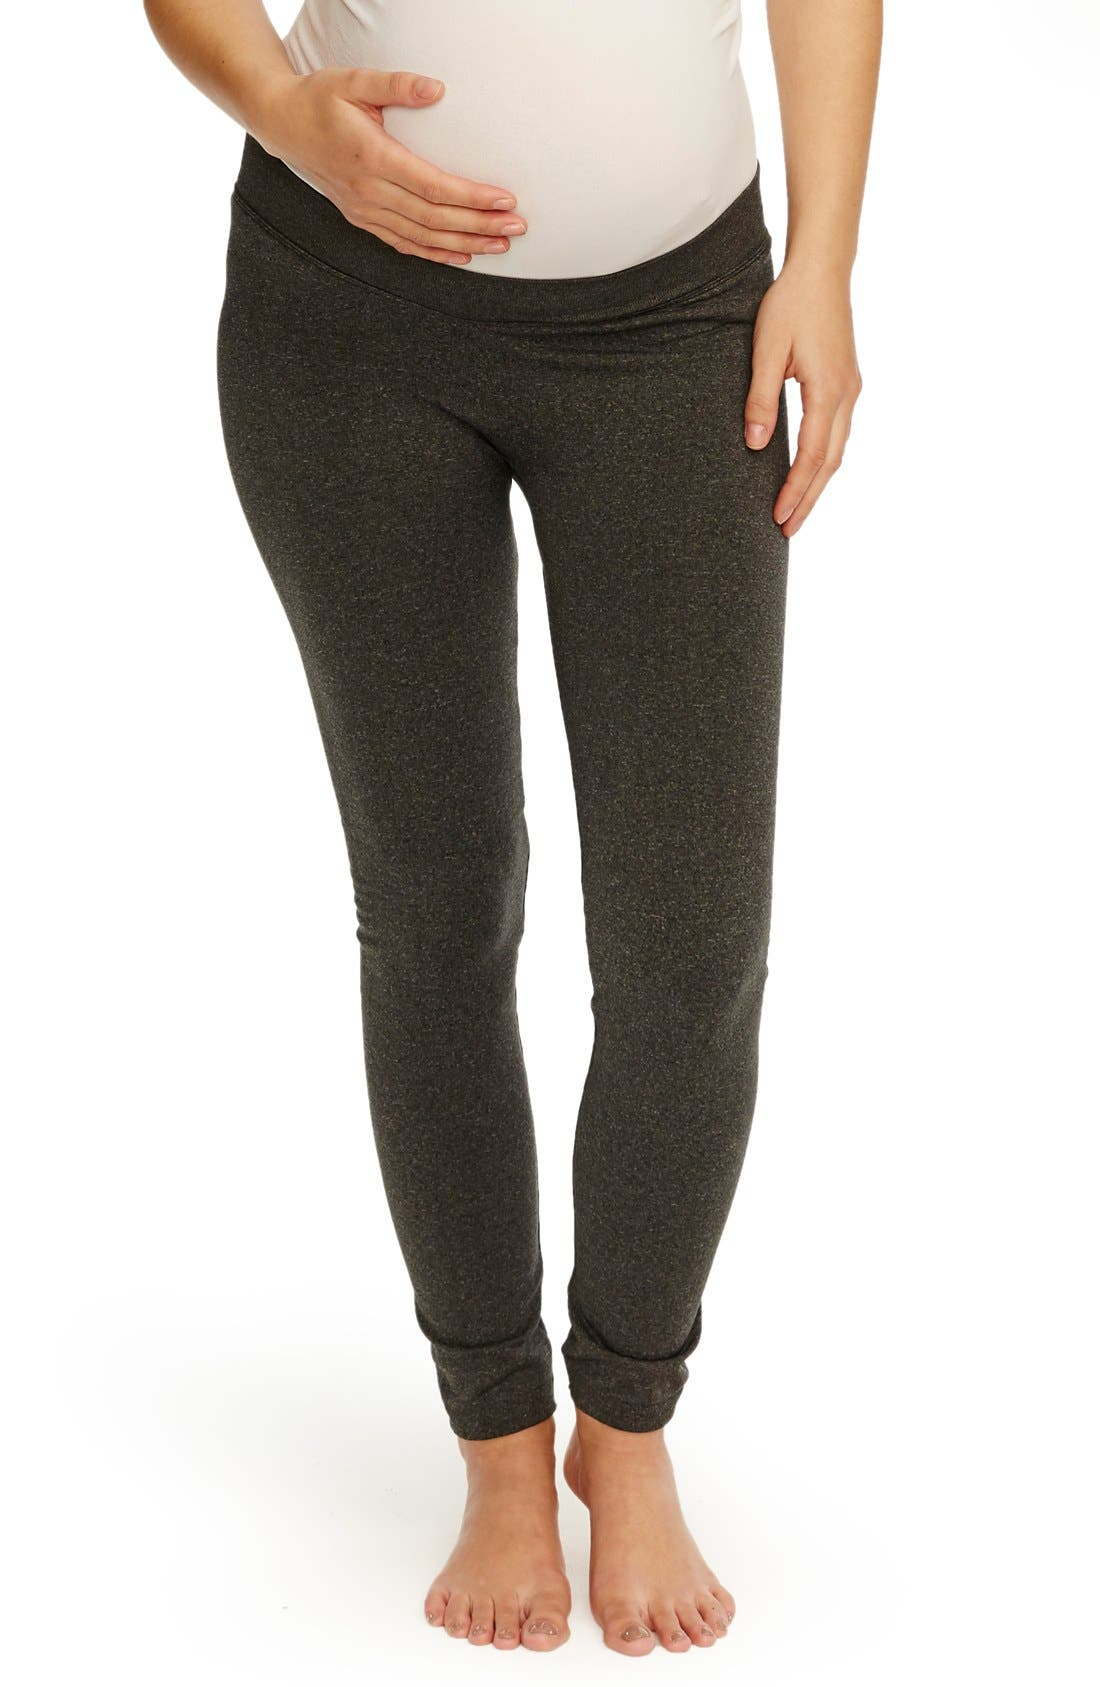 Seamless Low Rise Maternity Leggings,                             Main thumbnail 1, color,                             Charcoal Heather